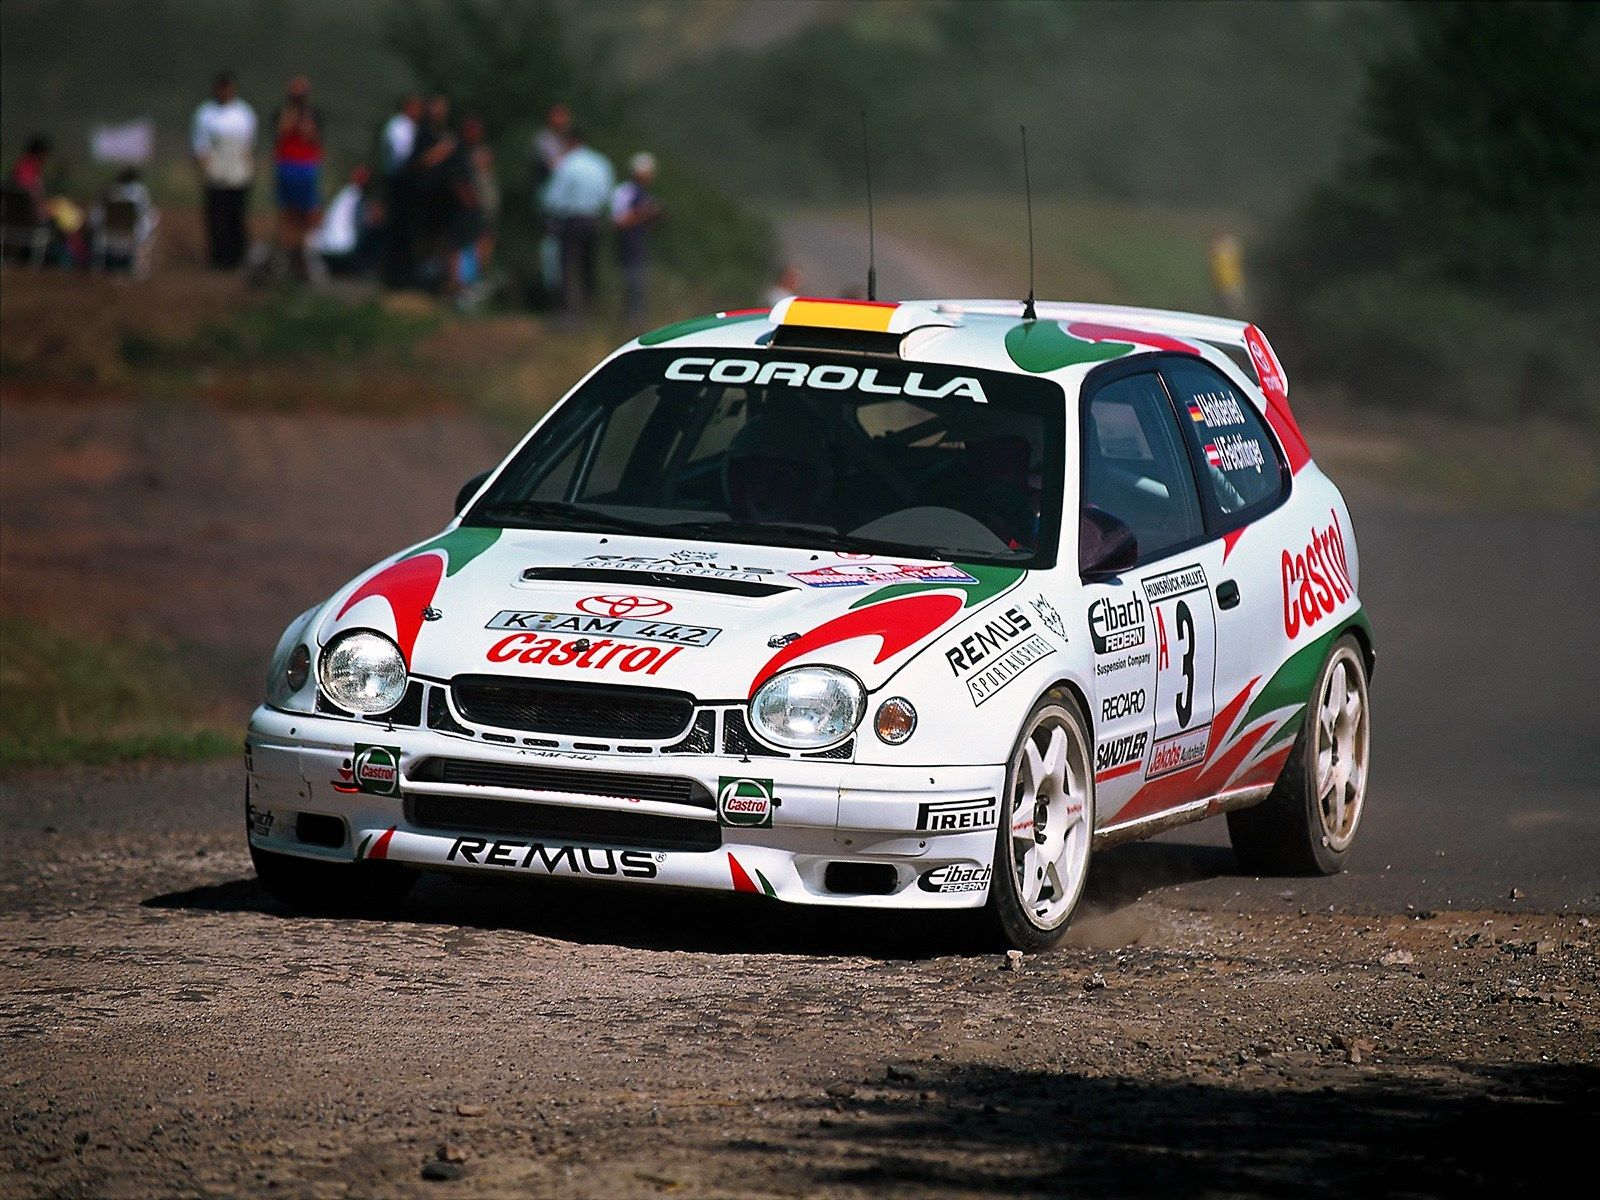 Seldon London - wrc racing wallpaper pack 1080p hd - 1600x1200 px ...